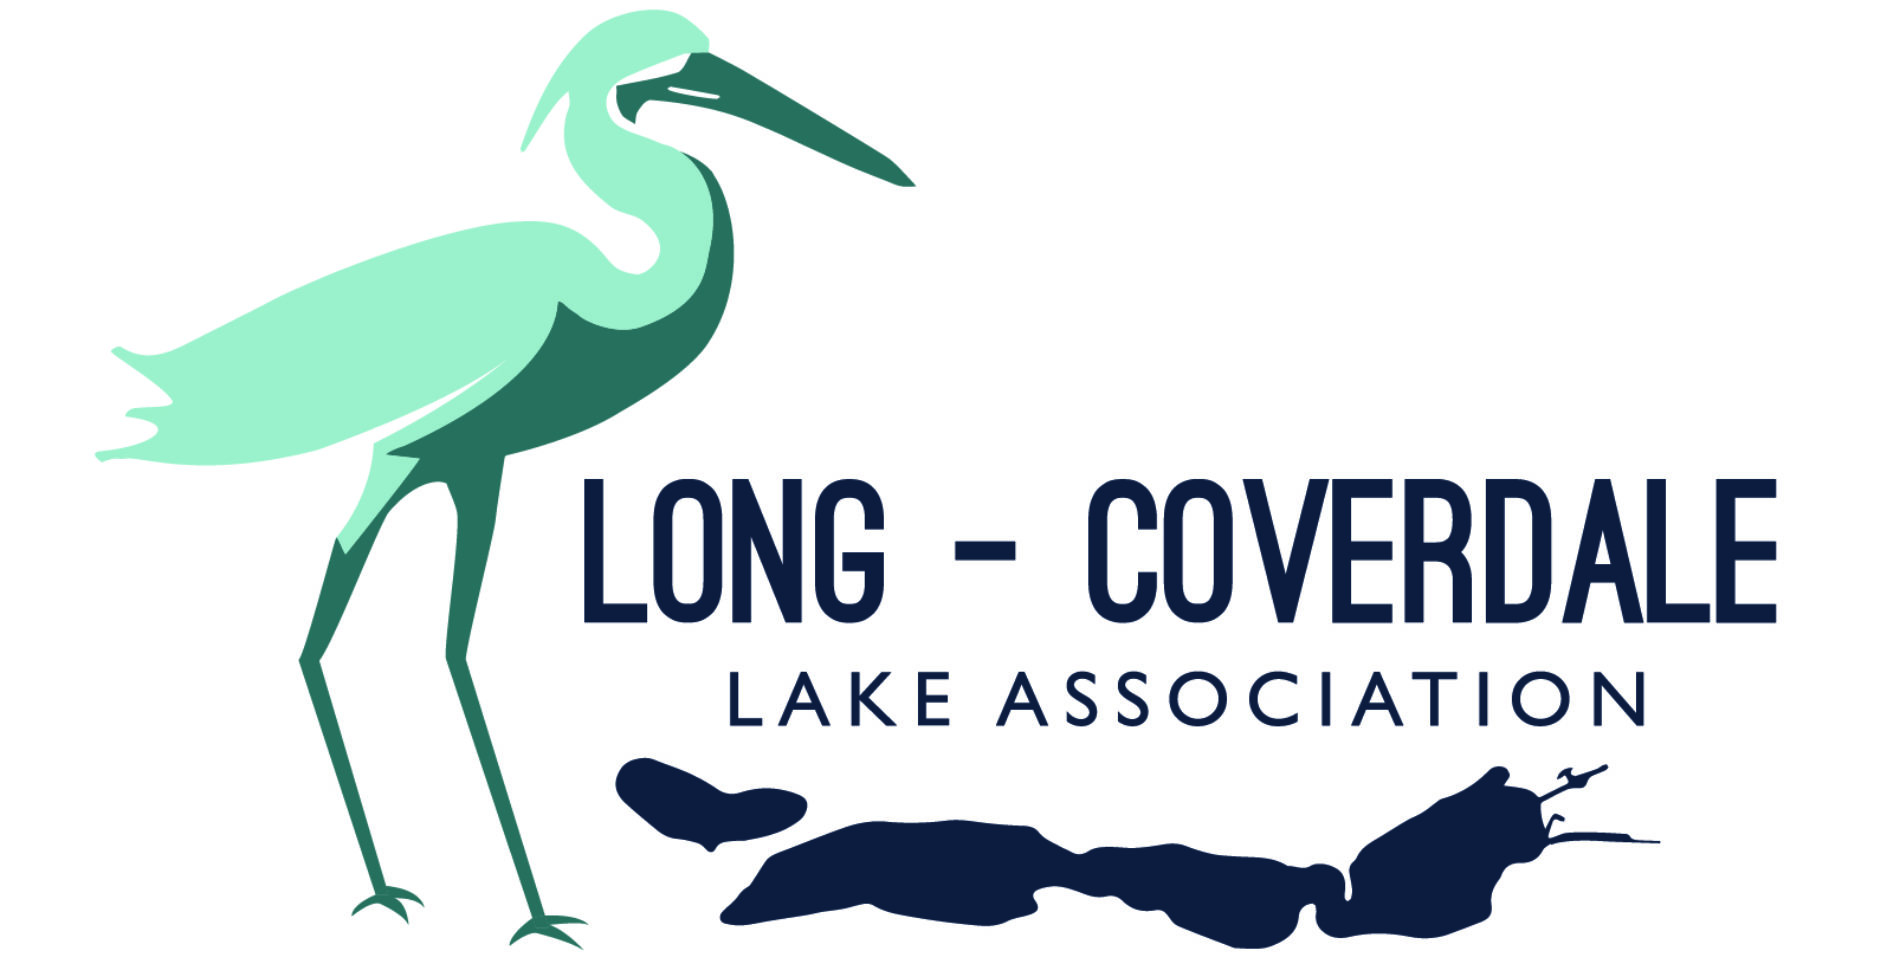 Long-Coverdale Lake Association